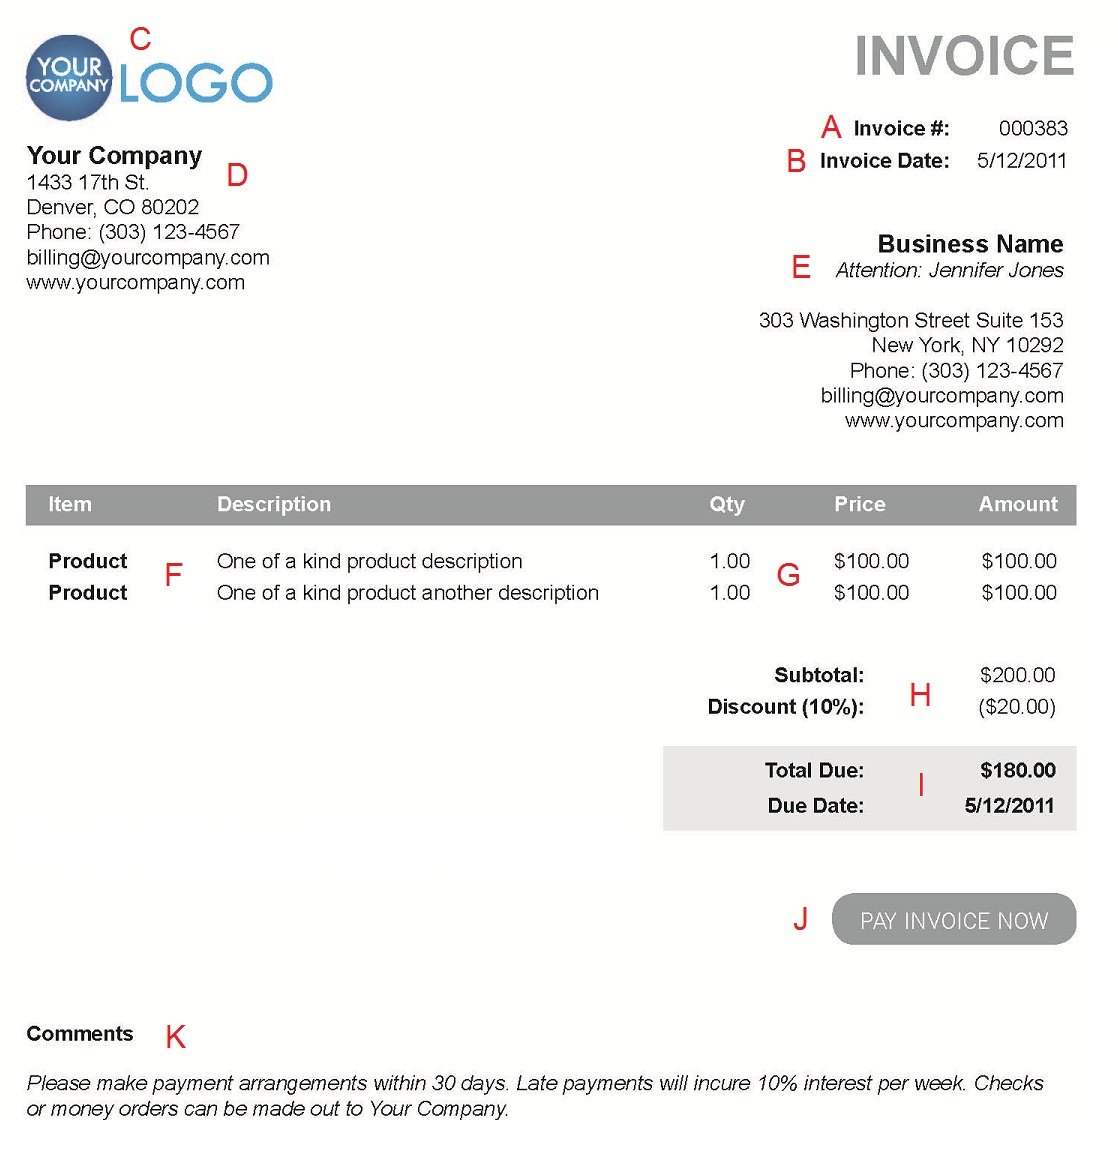 Pigbrotherus  Pleasant The  Different Sections Of An Electronic Payment Invoice With Licious A  With Beautiful Simple Invoices Templates Also Paypal Fee Invoice In Addition Nafta Commercial Invoice And Proforma Invoice Dhl As Well As Bay Area Fastrak Invoice Additionally Free Invoice Creator Online From Paysimplecom With Pigbrotherus  Licious The  Different Sections Of An Electronic Payment Invoice With Beautiful A  And Pleasant Simple Invoices Templates Also Paypal Fee Invoice In Addition Nafta Commercial Invoice From Paysimplecom